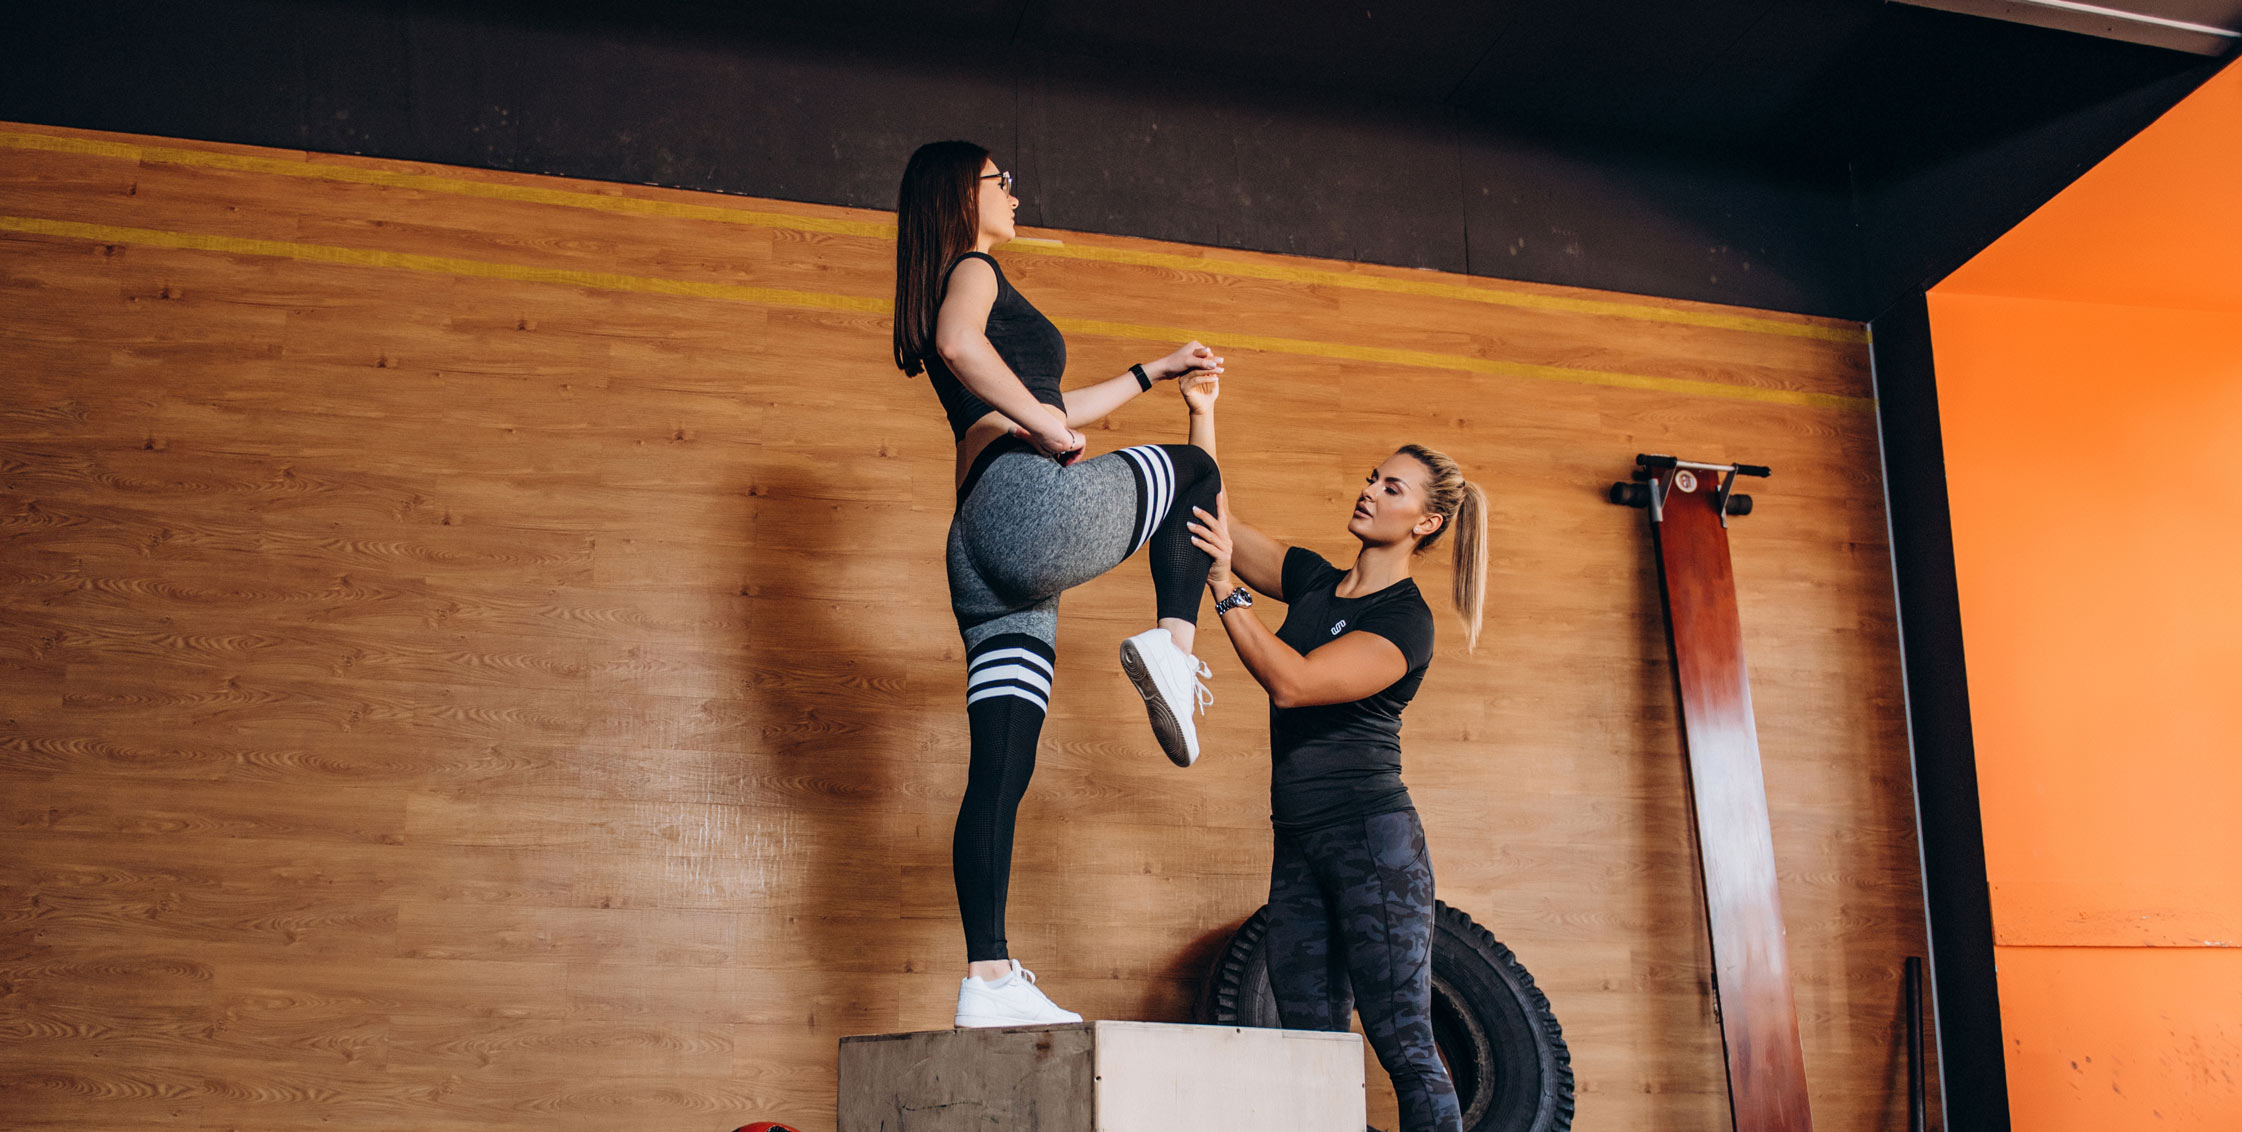 Julia and her client doing a fitness exercise as a part of the personal training program